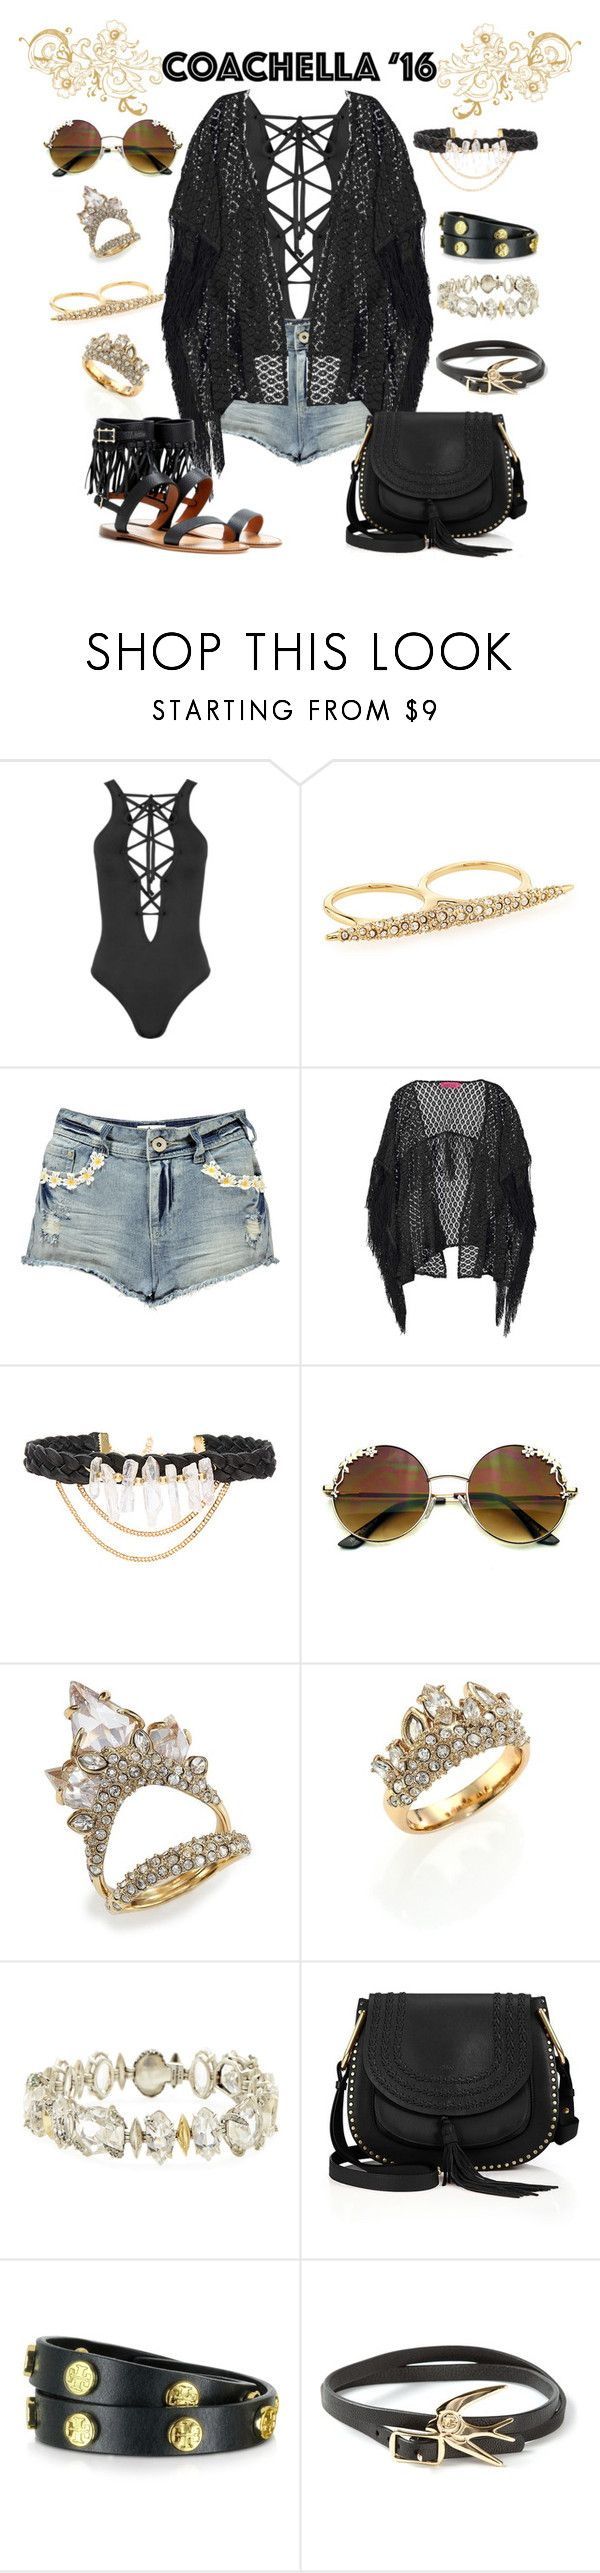 Coachella 2016 #6 by hemmo1drauhl on Polyvore featuring moda, Boohoo, WearAll, Valentino, Chloé, Alexis Bittar, Tory Burch, McQ by Alexander McQueen, Ettika and black